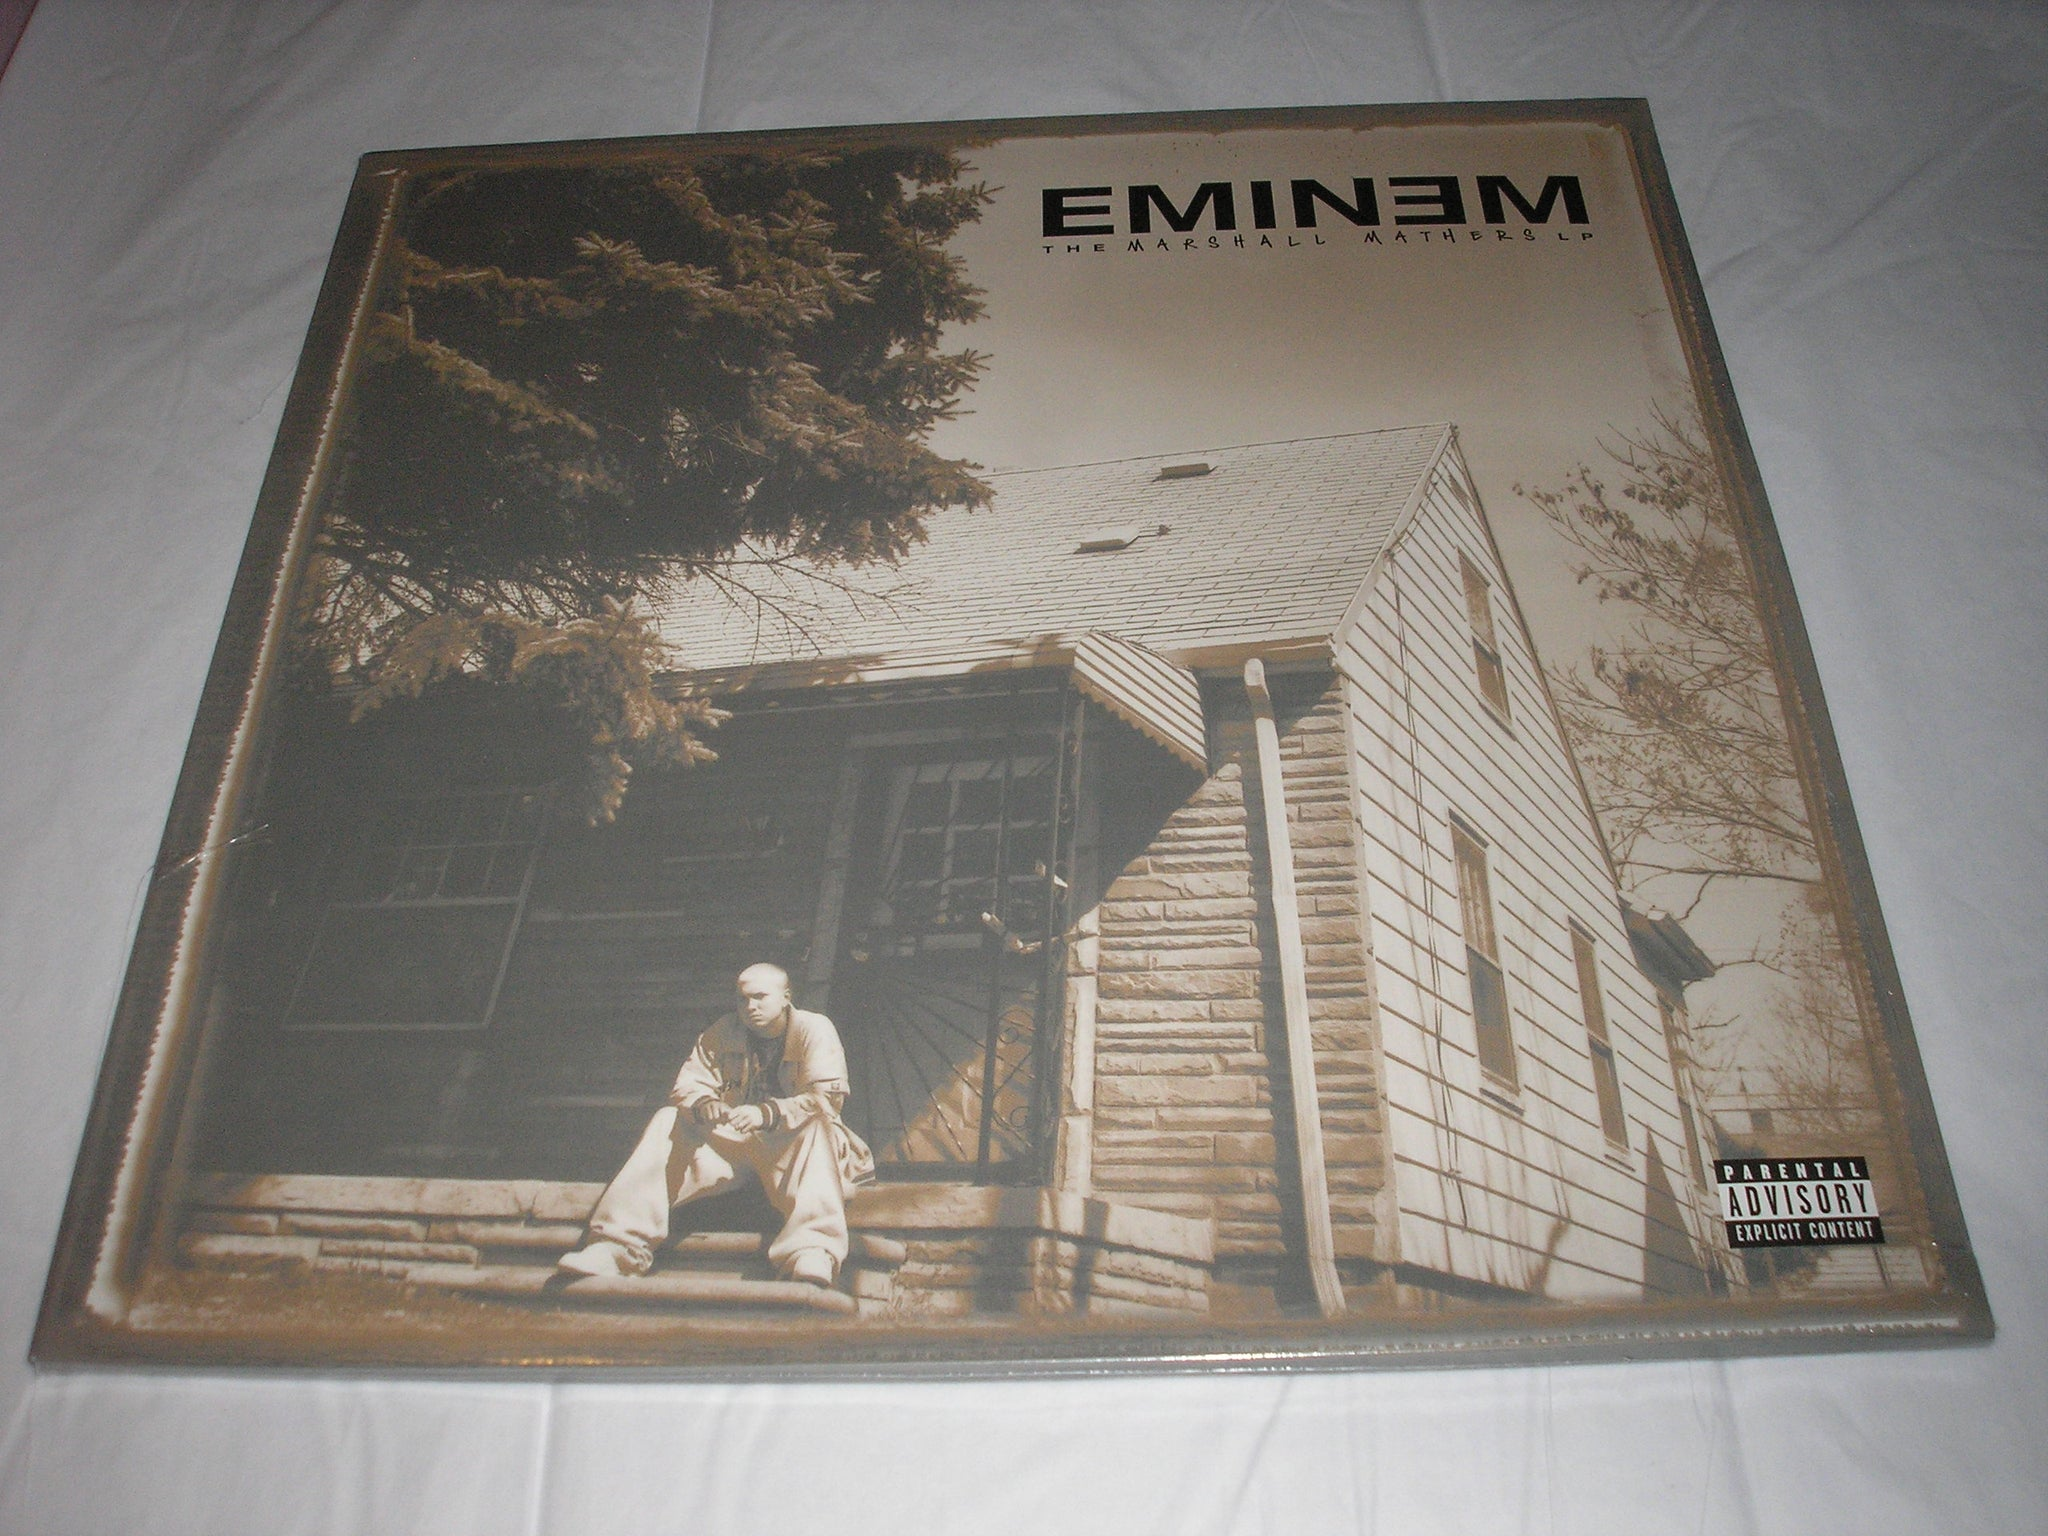 eminem marshall mathers lp 2 free album download